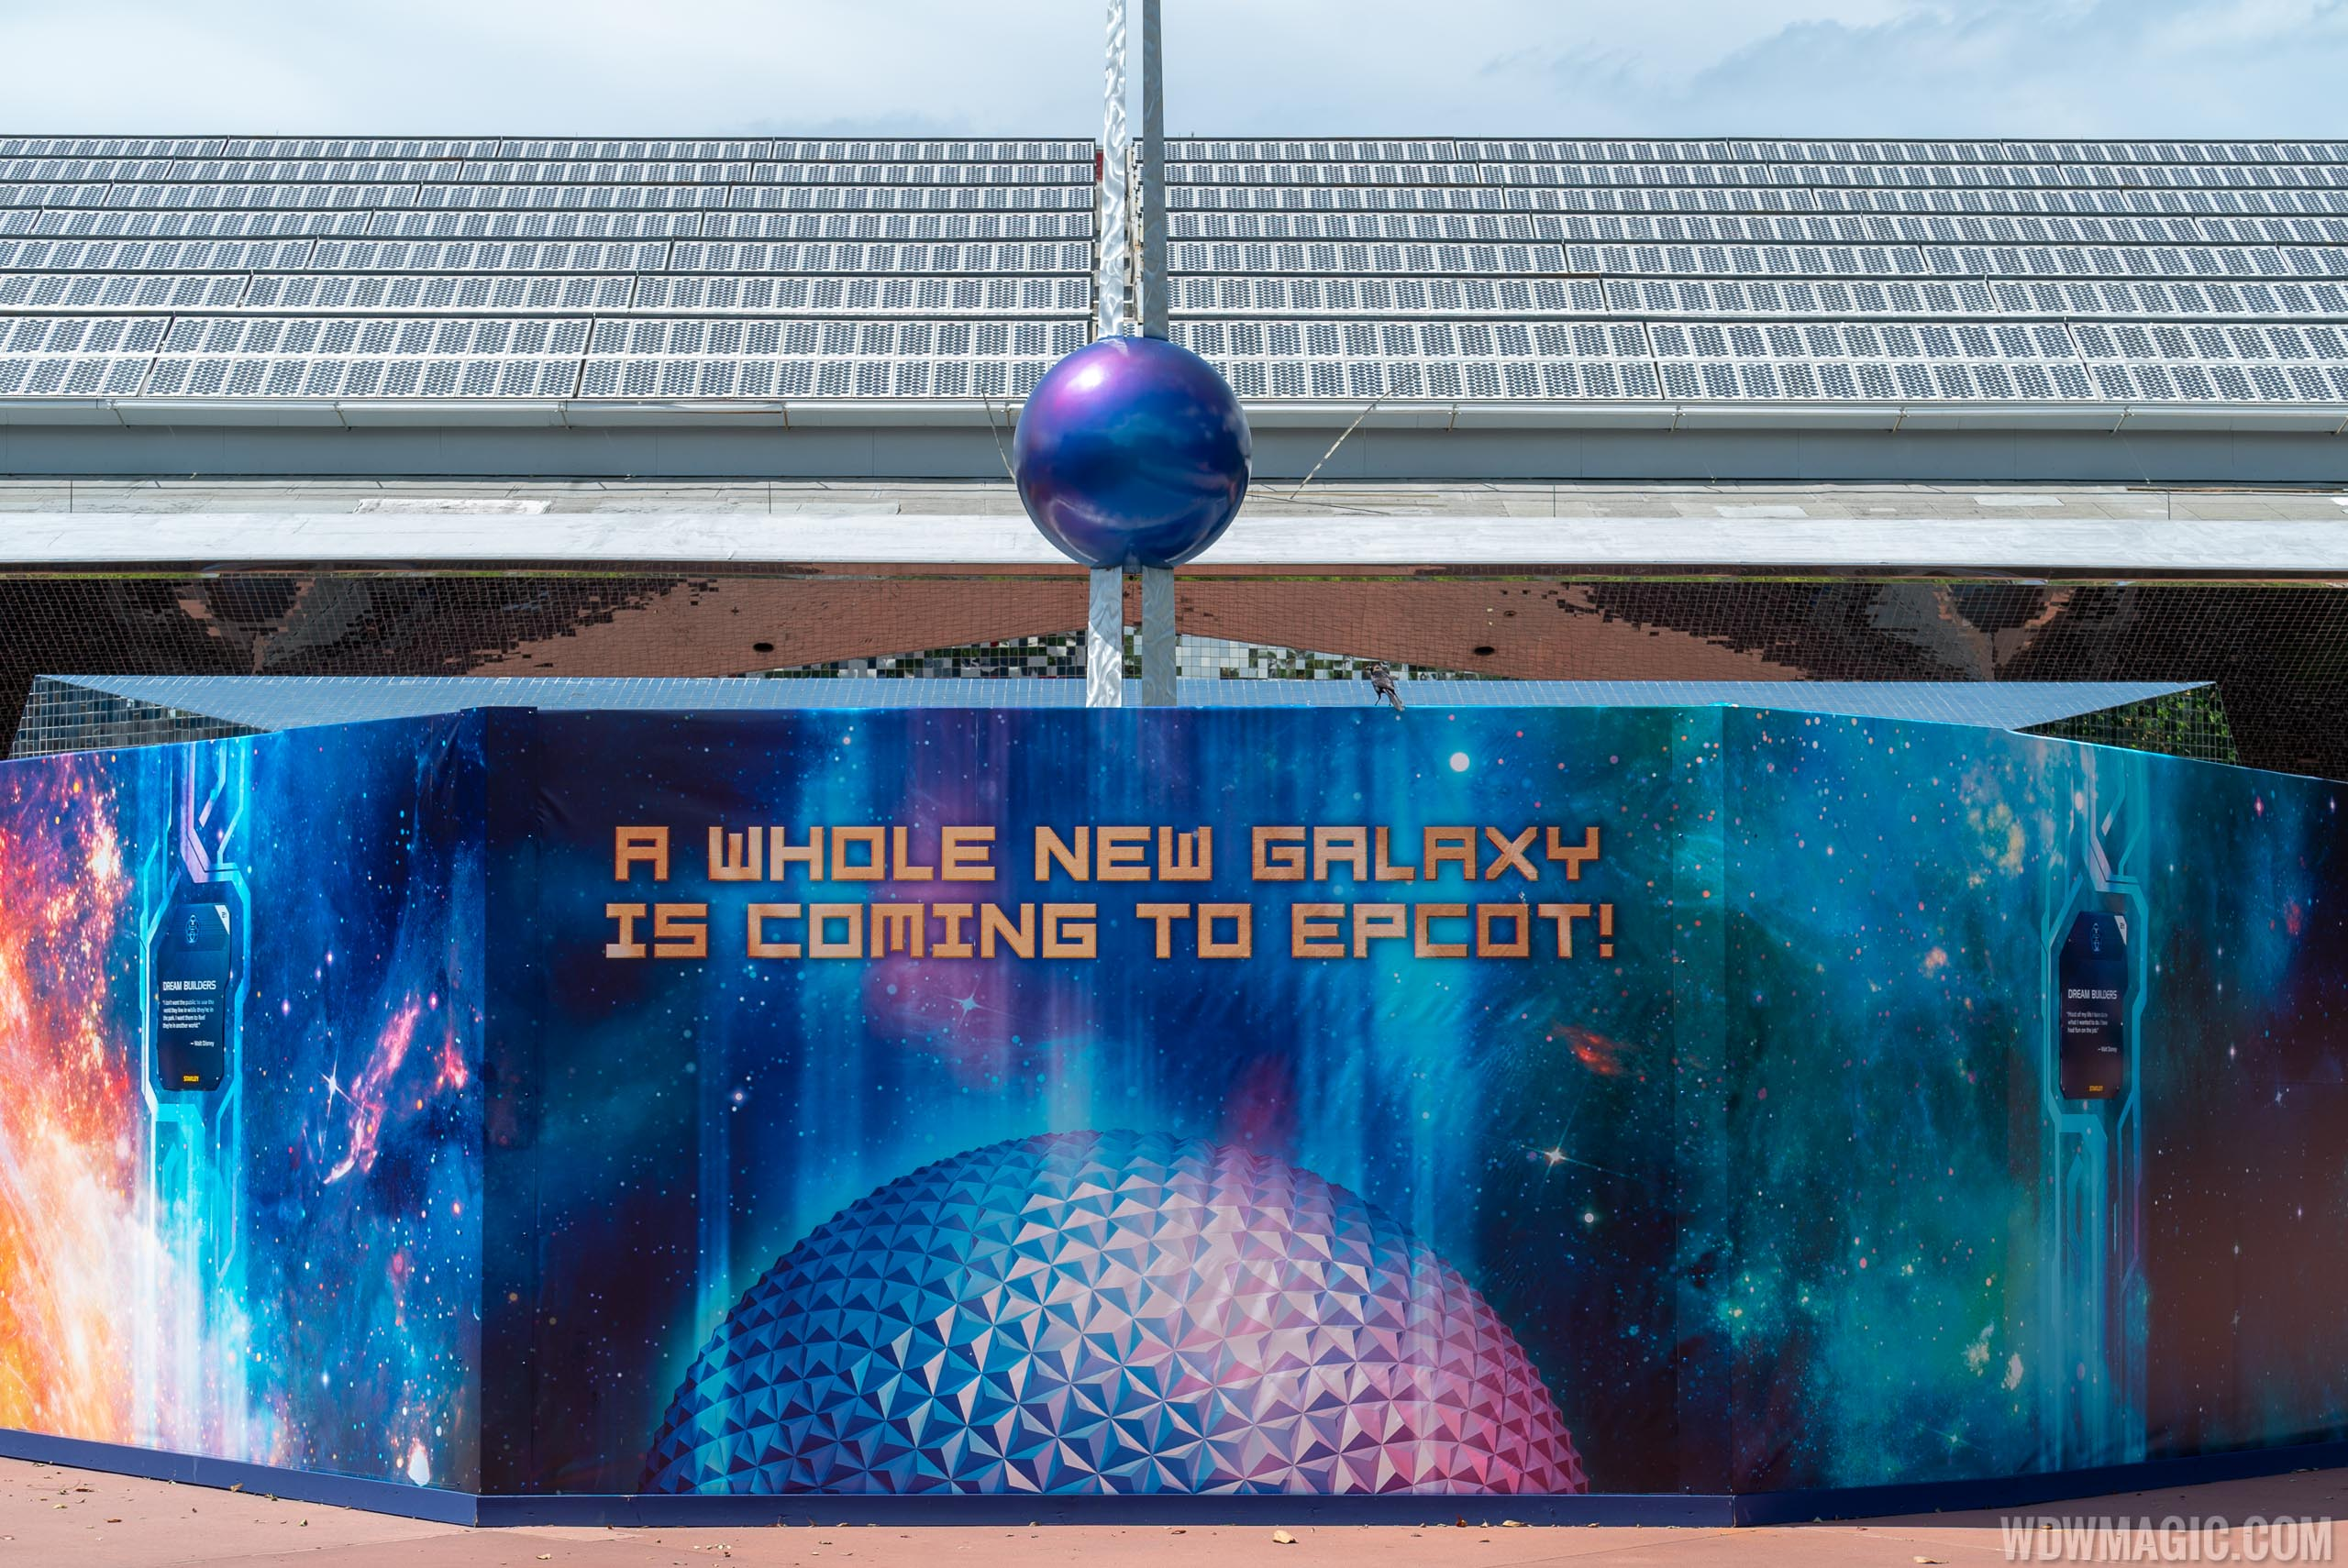 Guardians of the Galaxy coaster construction - June 2018